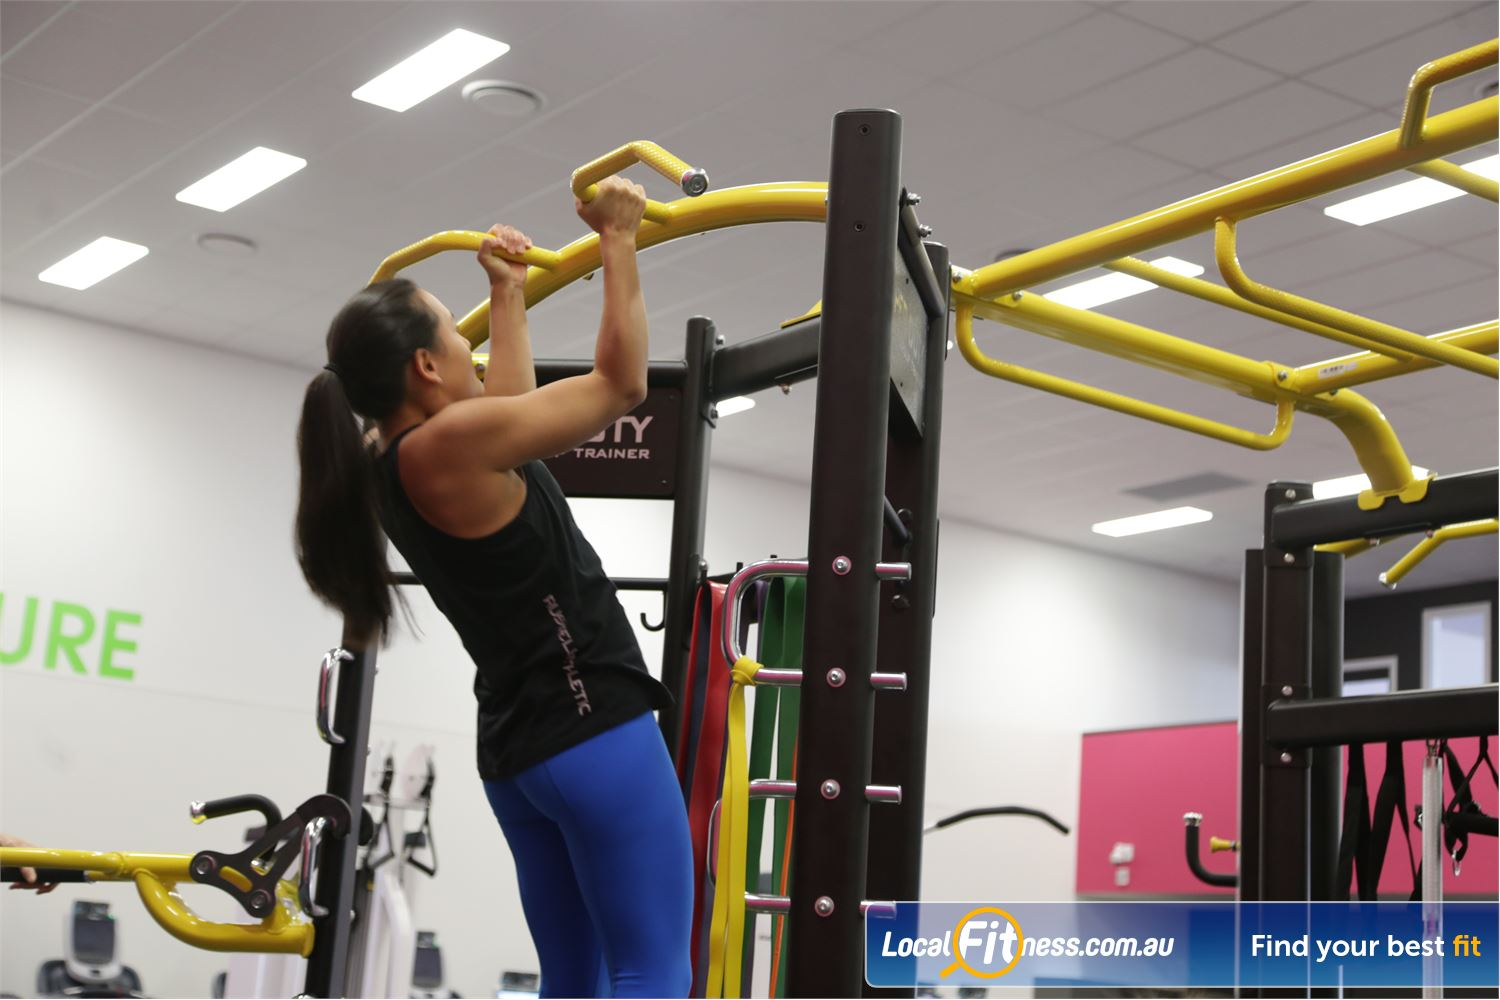 Fernwood Fitness Near Grahamvale Get into functional training with Fernwood Functional FIT.